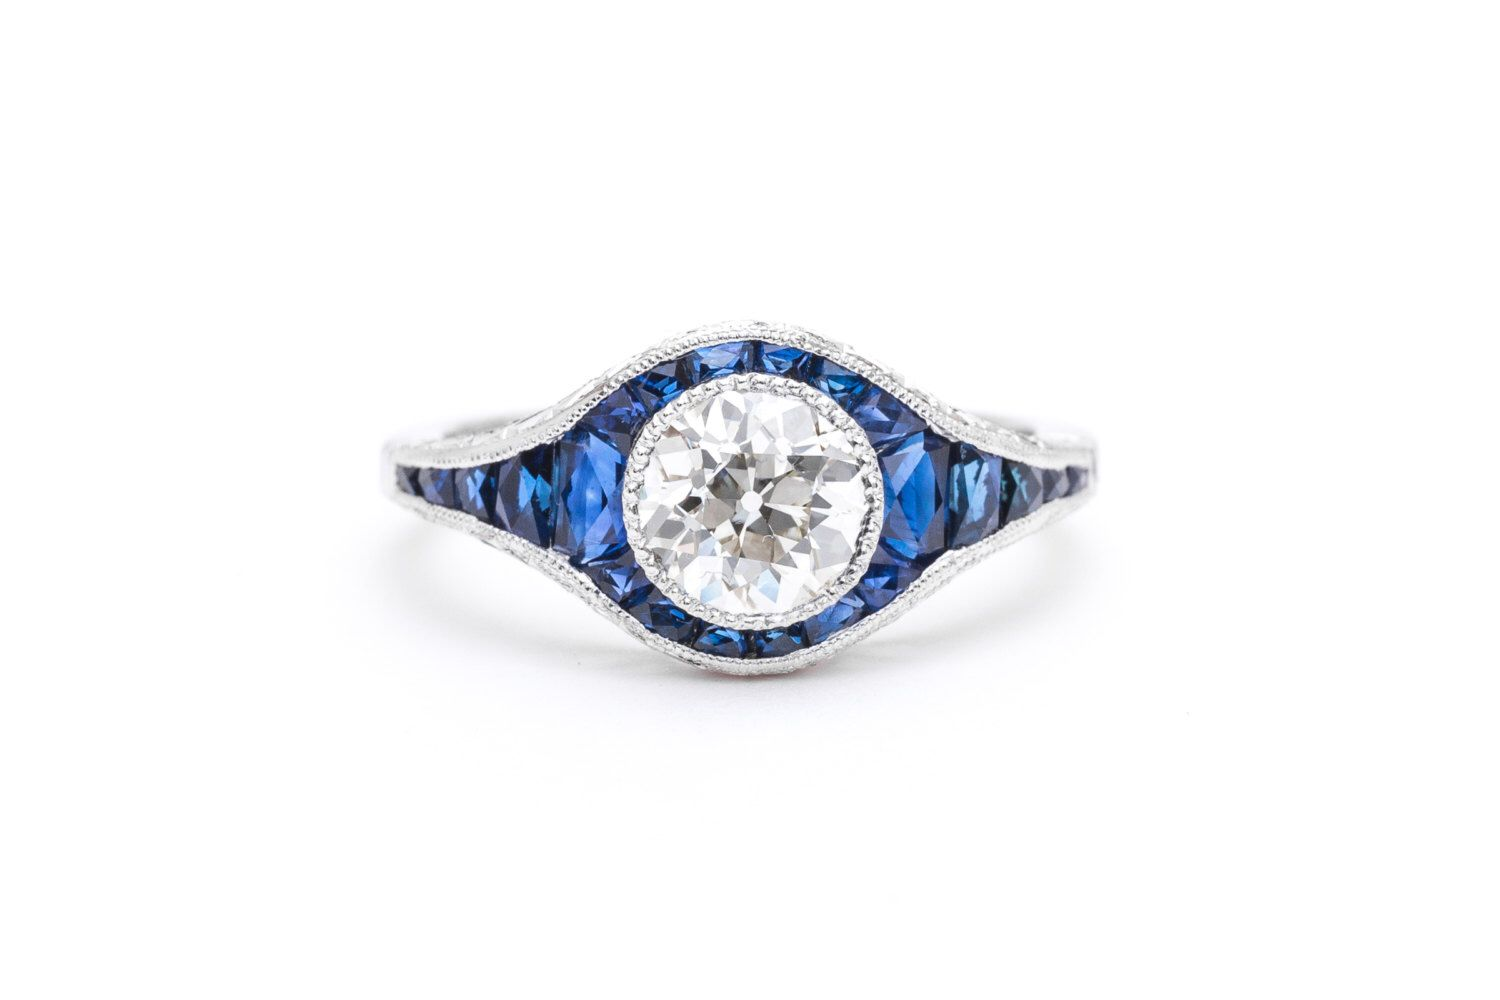 Glorious Art Deco Diamond & Sapphire Engagement Ring in Platinum by BeaconHillJewelers on Etsy https://www.etsy.com/listing/492743204/glorious-art-deco-diamond-sapphire